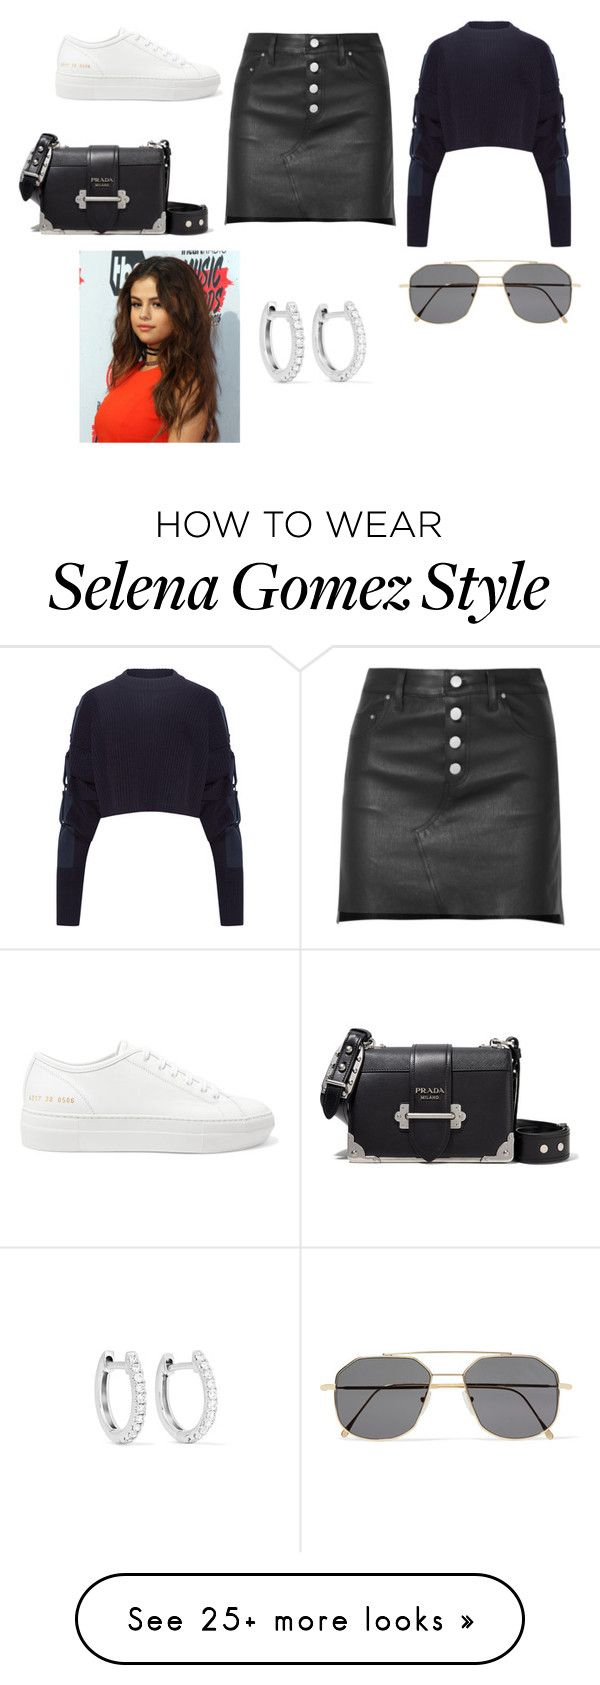 """""""Sin título #4650"""" by ceciamuedo on Polyvore featuring Y/Project, AMIRI, Common Projects, Prada, Illesteva and Anita Ko"""